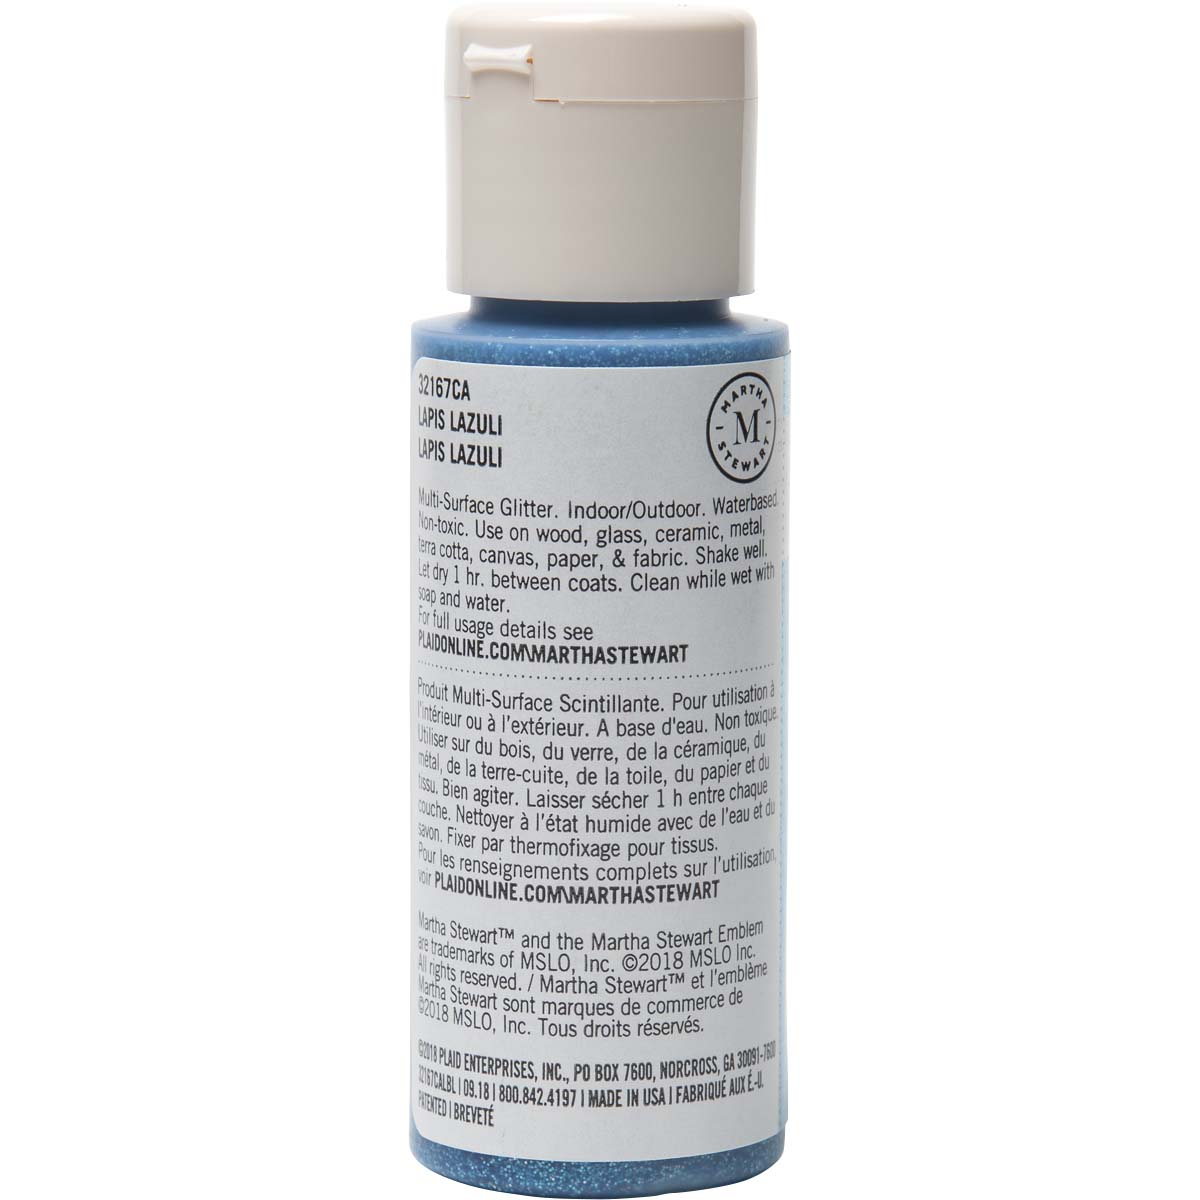 Martha Stewart ® Multi-Surface Glitter Acrylic Craft Paint - Lapis Lazuli, 2 oz. - 32167CA